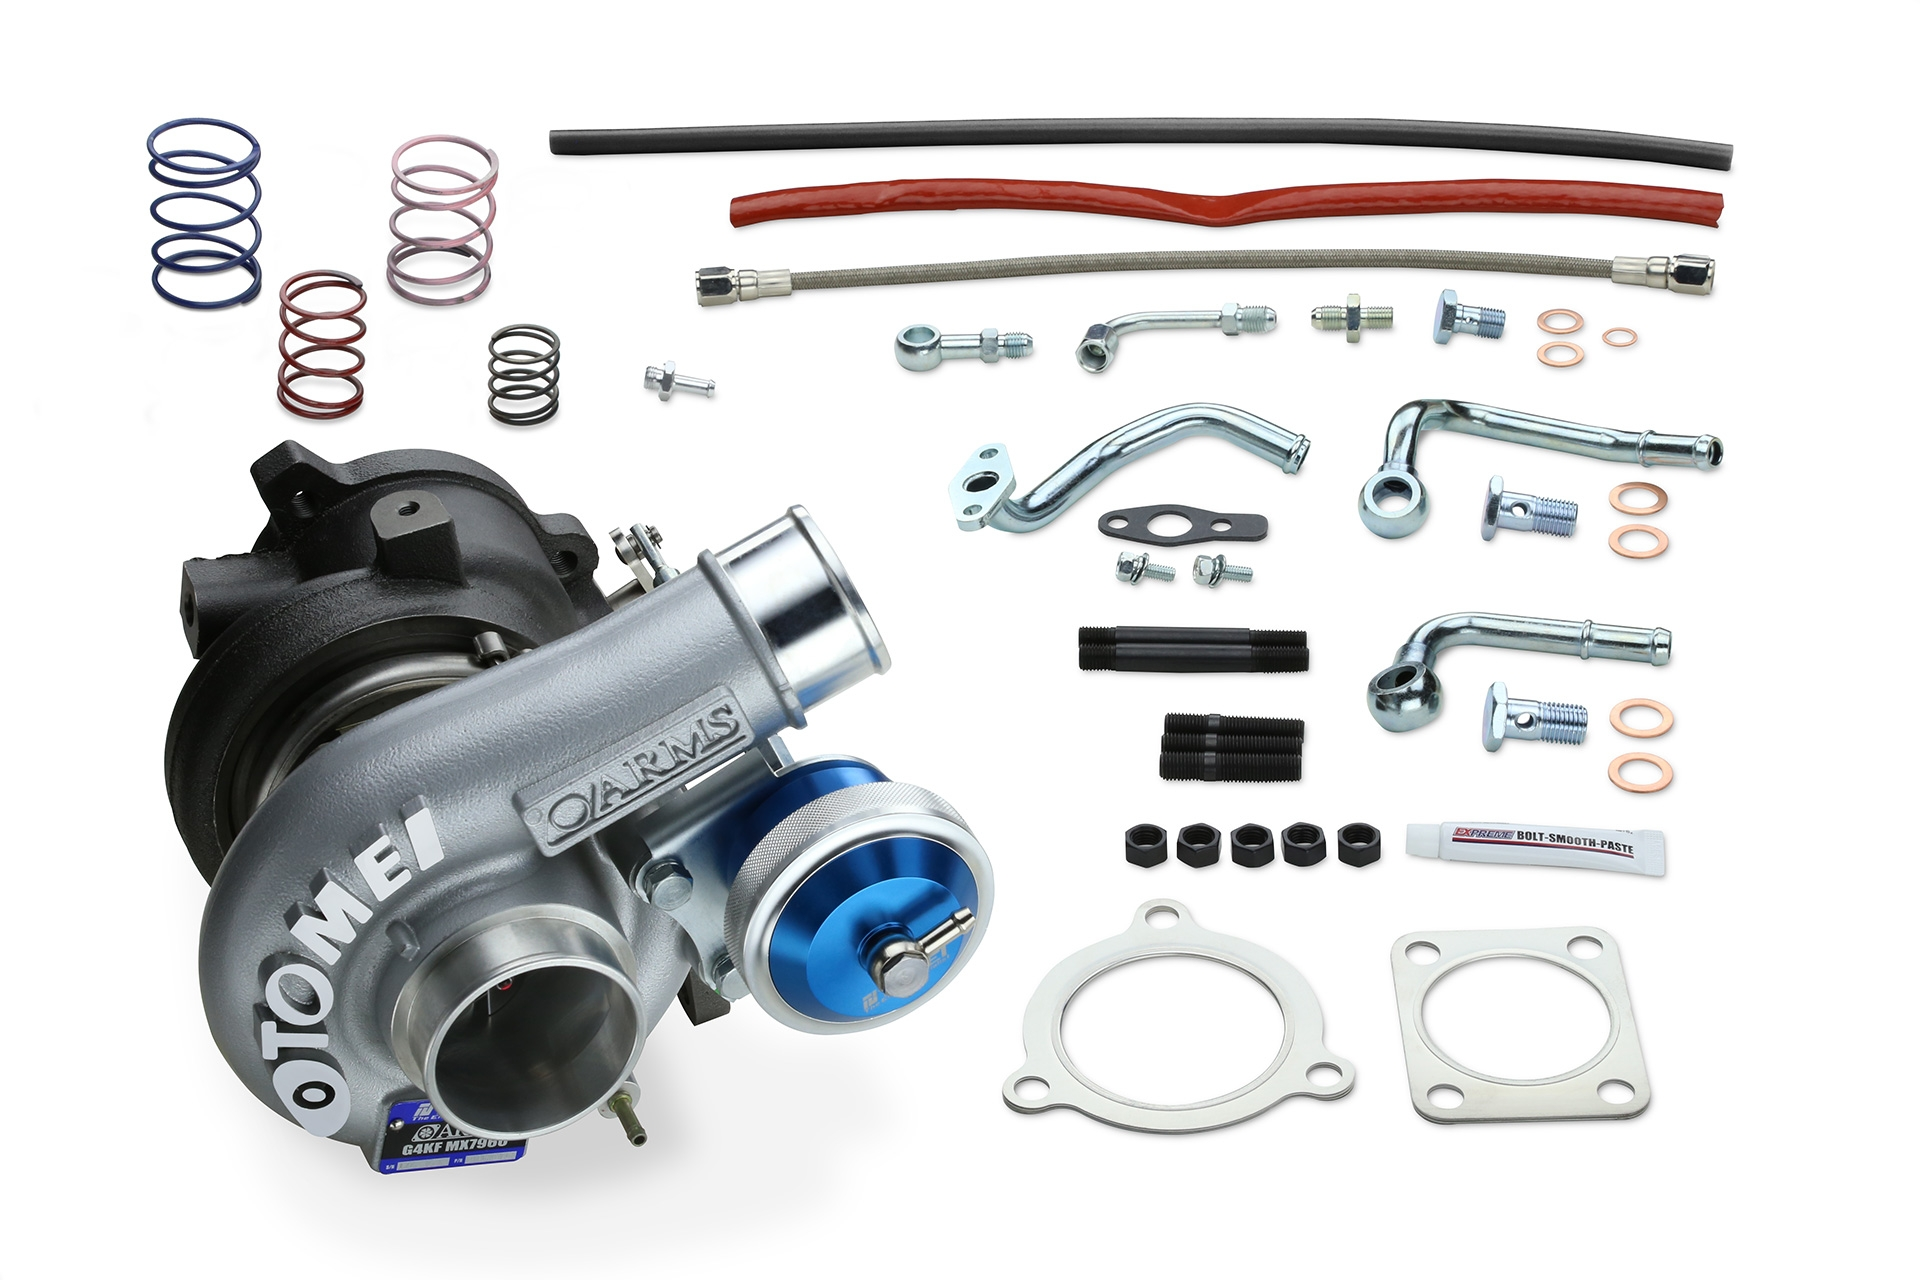 Tomei Turbocharger Kit Arms MX7960 G4KF Genesis Coupe